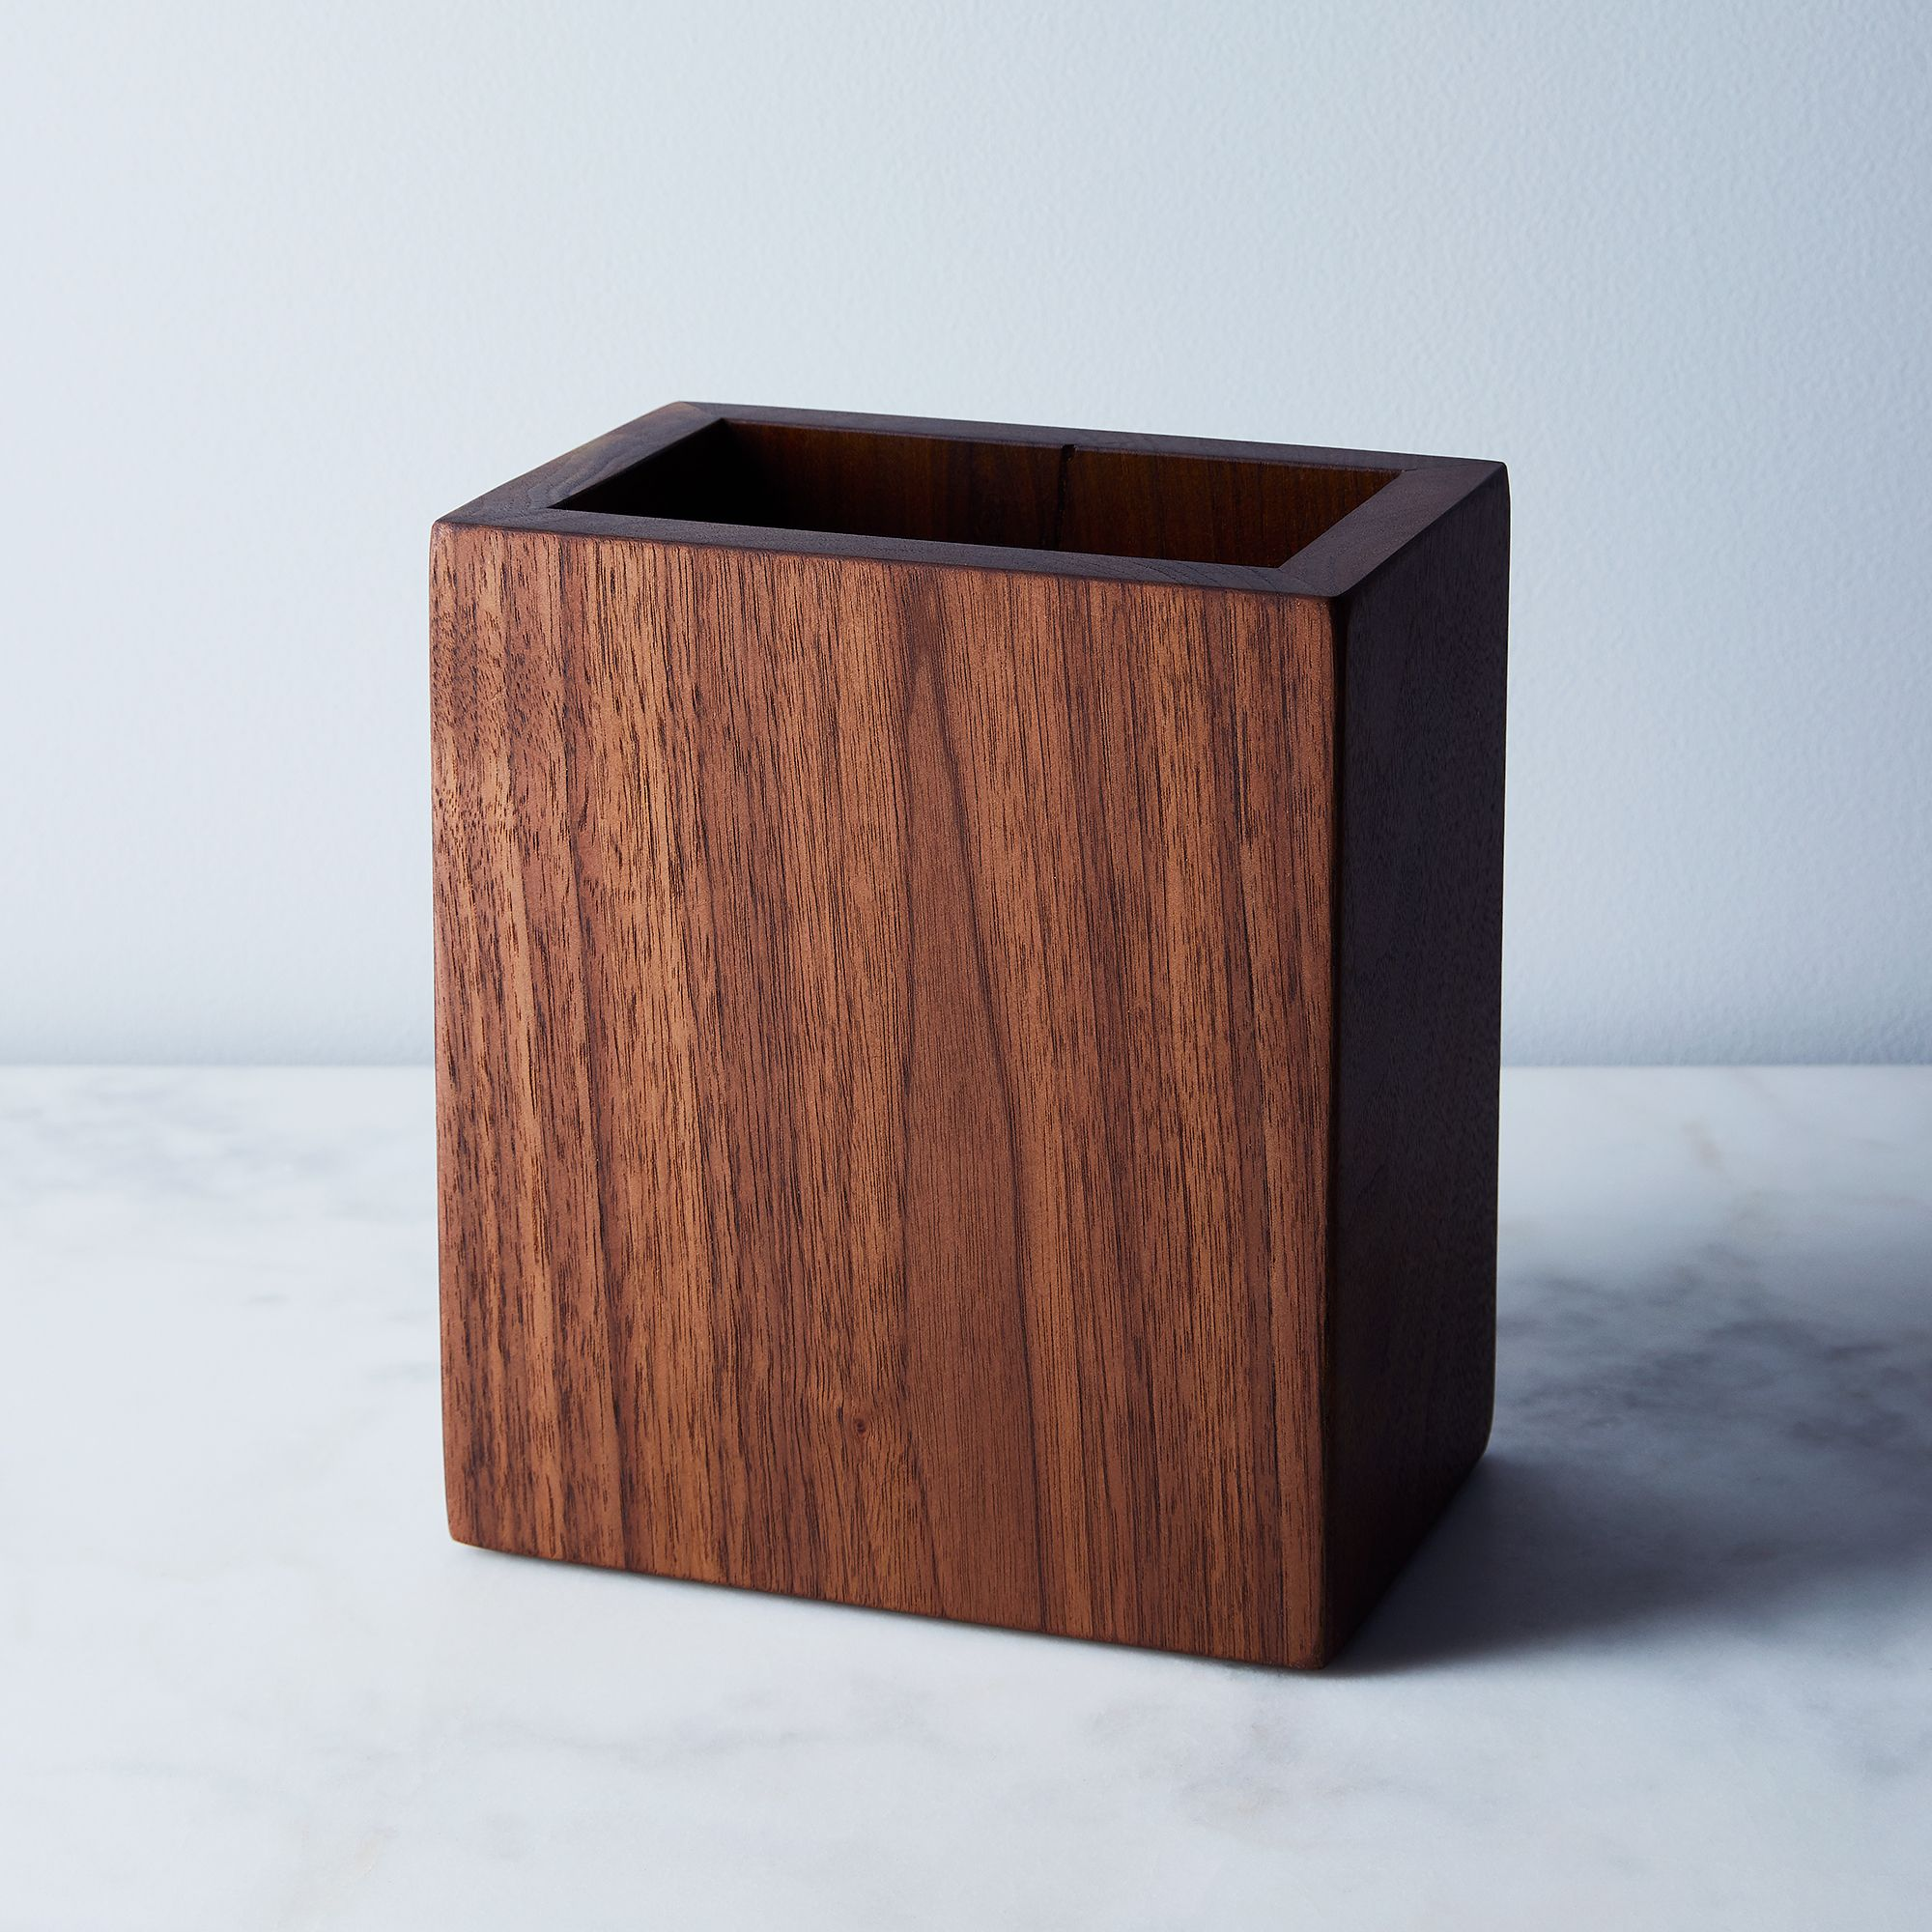 Walnut kitchen utensil holder utensil storage storage cliff walnut kitchen utensil holder utensil storage storage cliff spencer shop food52 on food52 workwithnaturefo